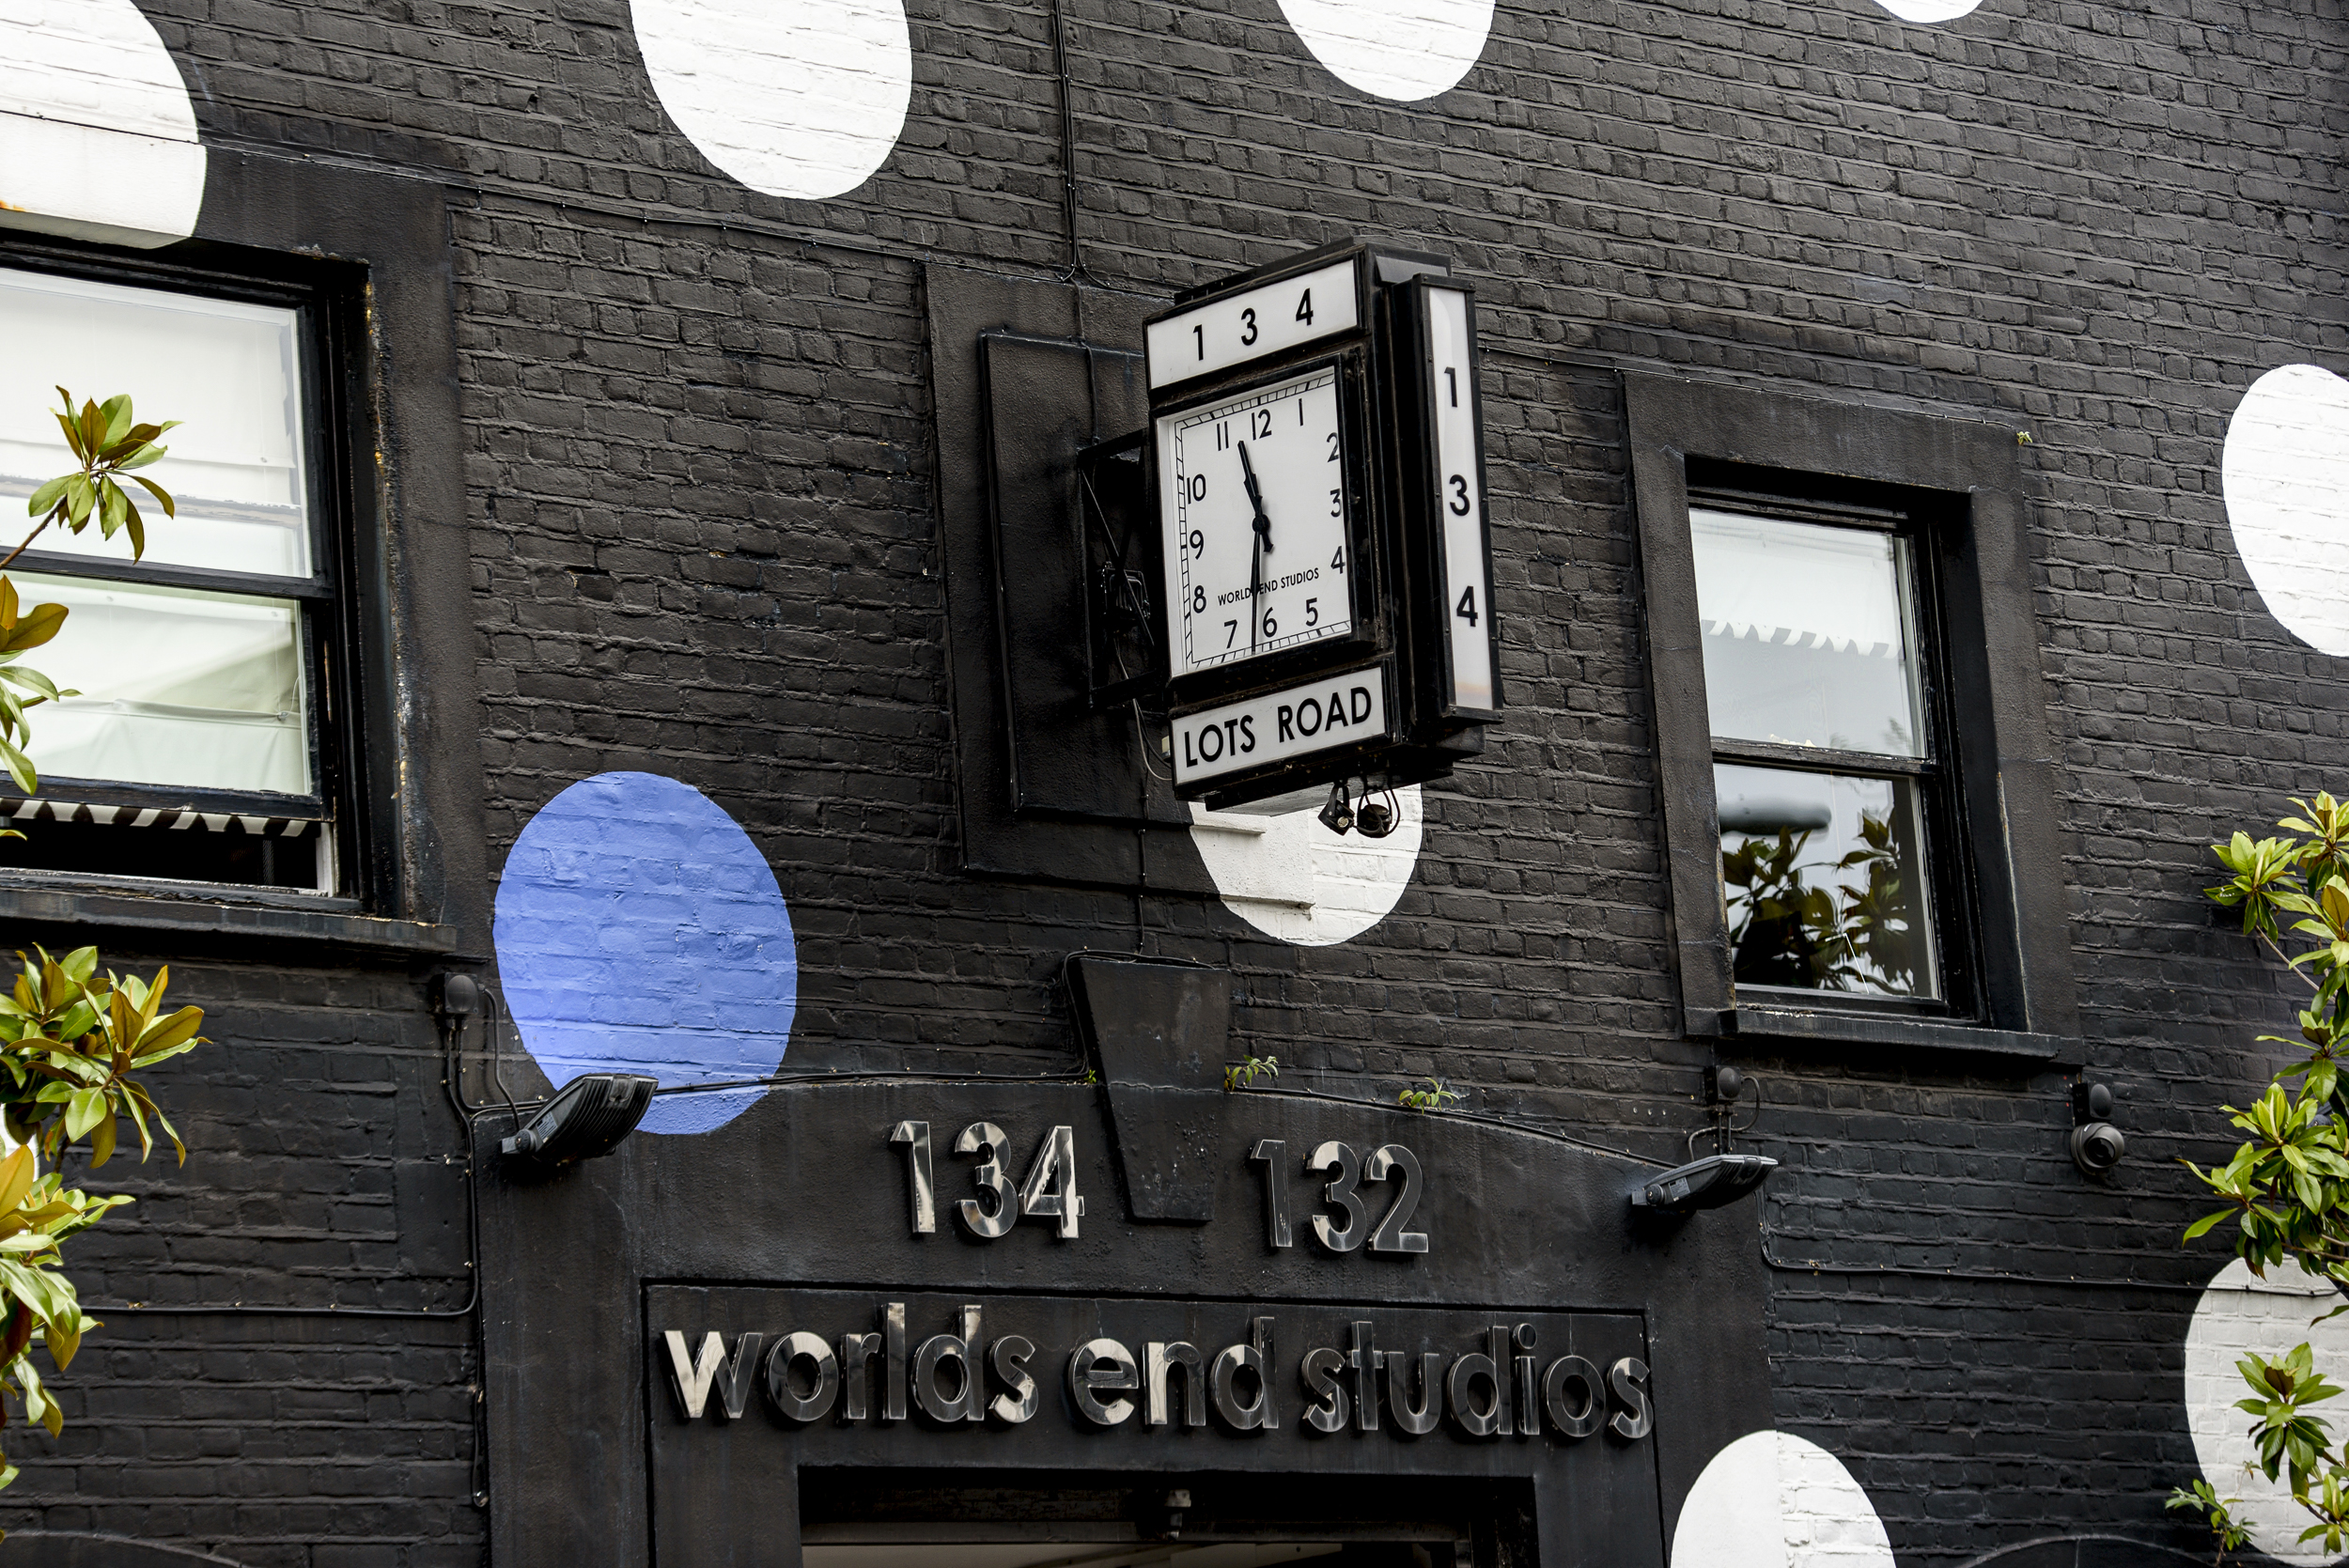 The front of Worlds End Studios on Lots Road painted in black and white polka dots